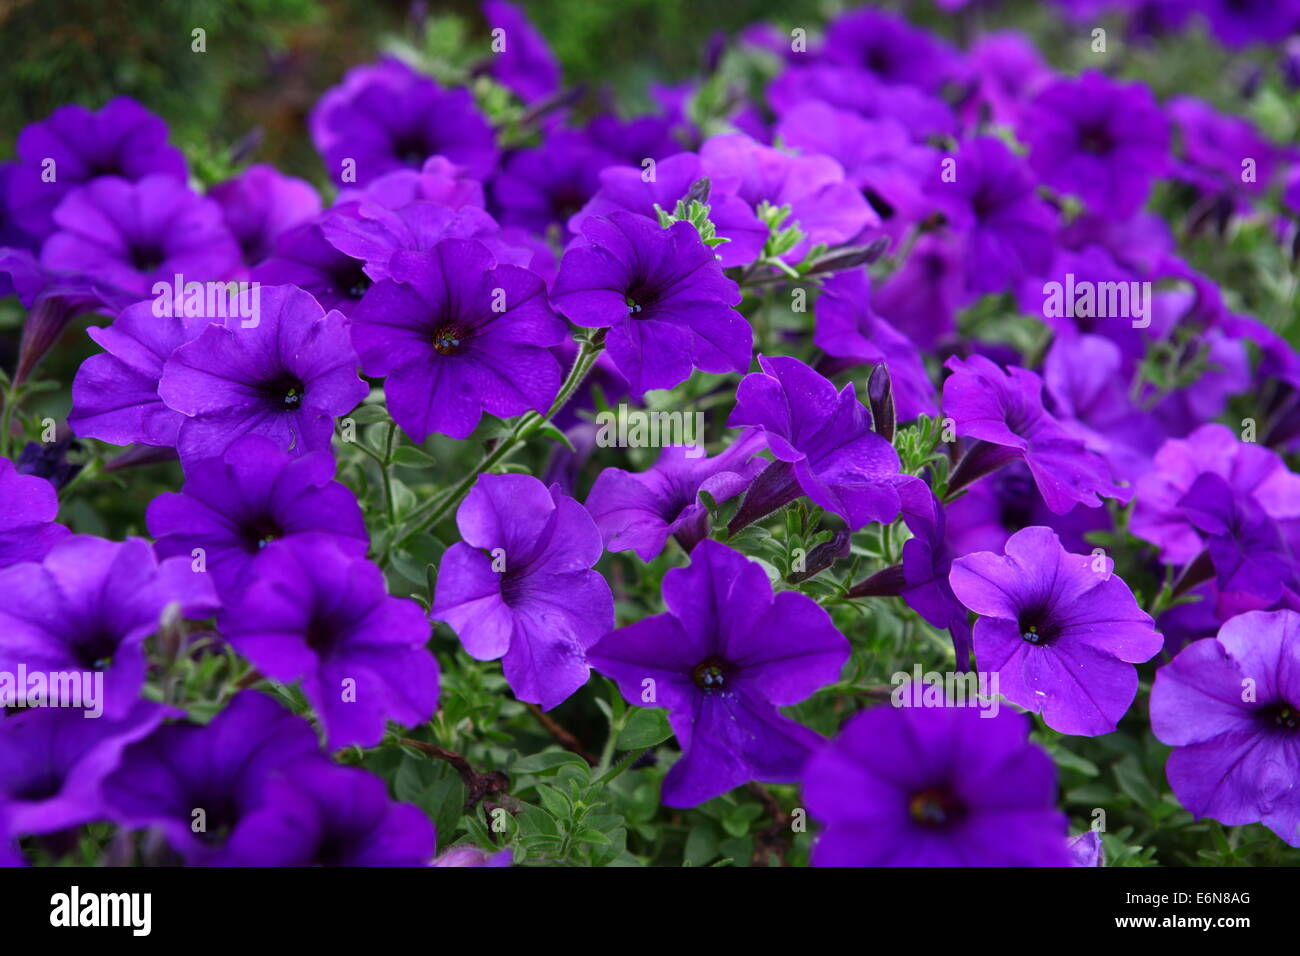 Petunia blue fantasy stock photos petunia blue fantasy stock flowerbed of beautiful purple flowers purple petunia blue fantasy stock image izmirmasajfo